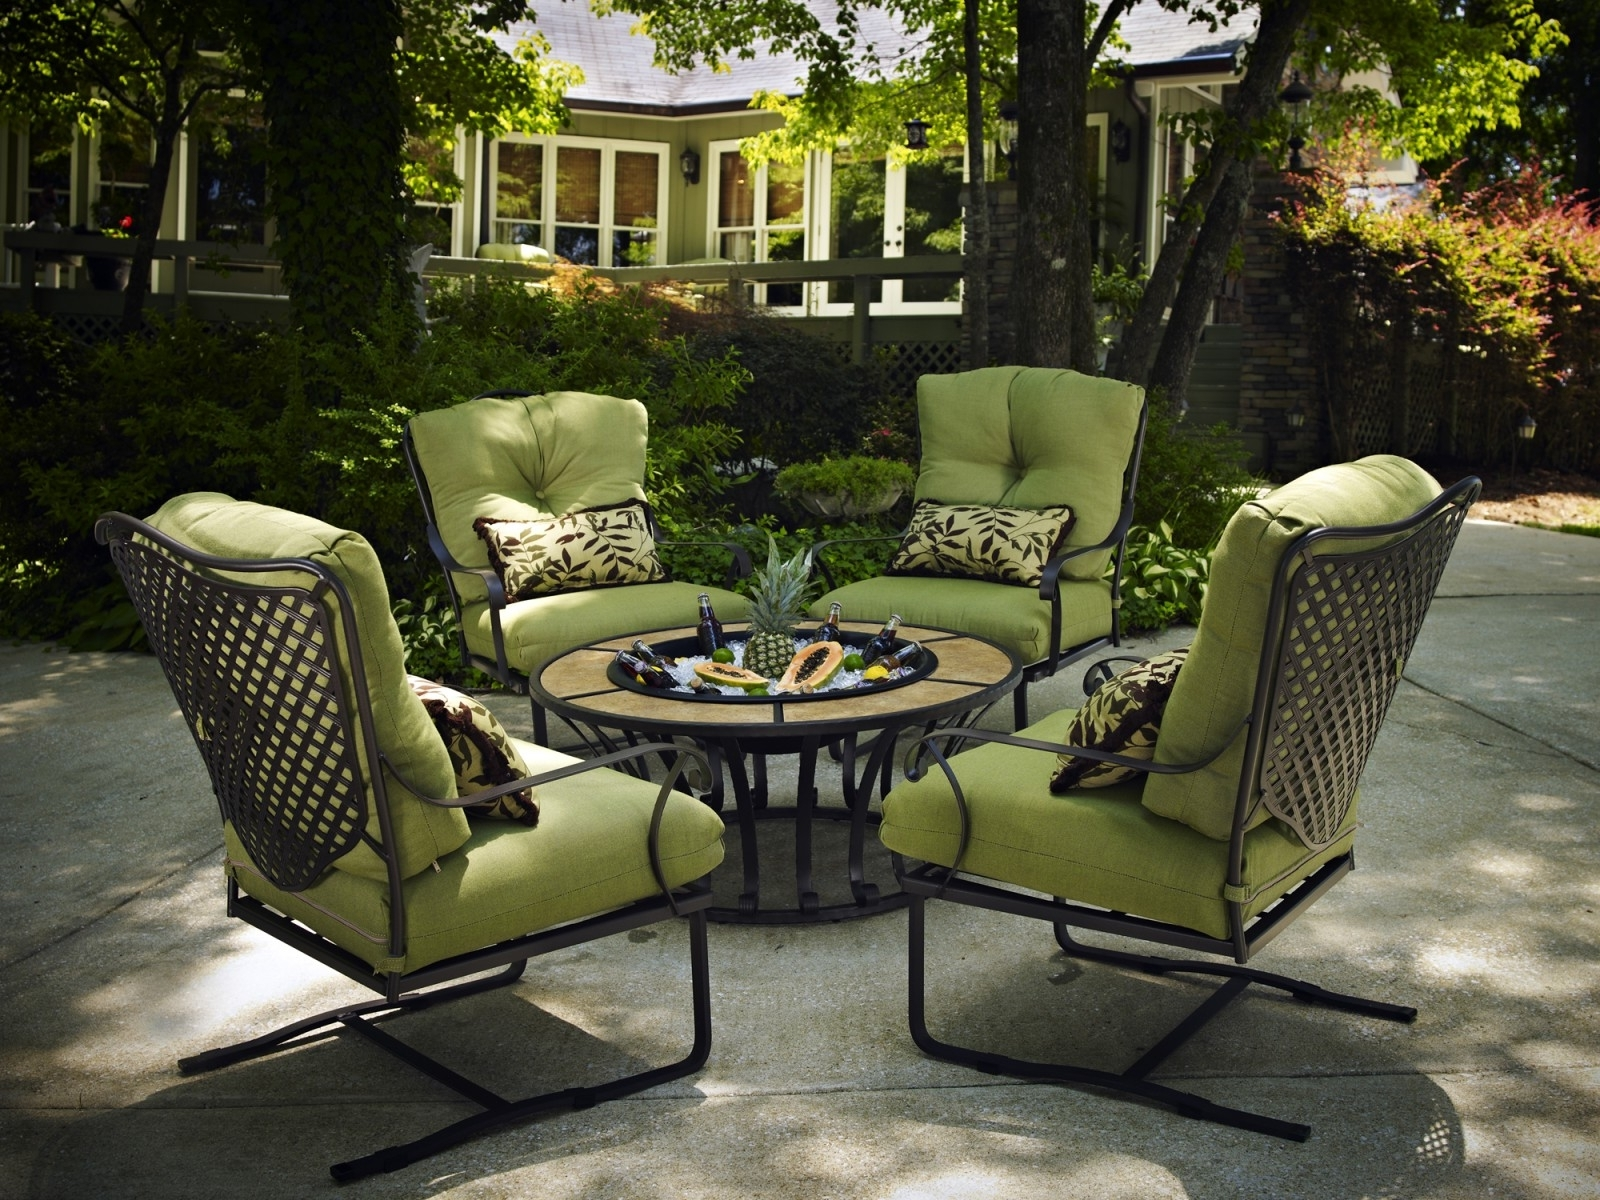 Ae Outdoor Patio Conversation Sets Sec101112 64 1000 Random 2 Green Throughout Most Recent Patio Conversation Sets With Covers (View 2 of 15)